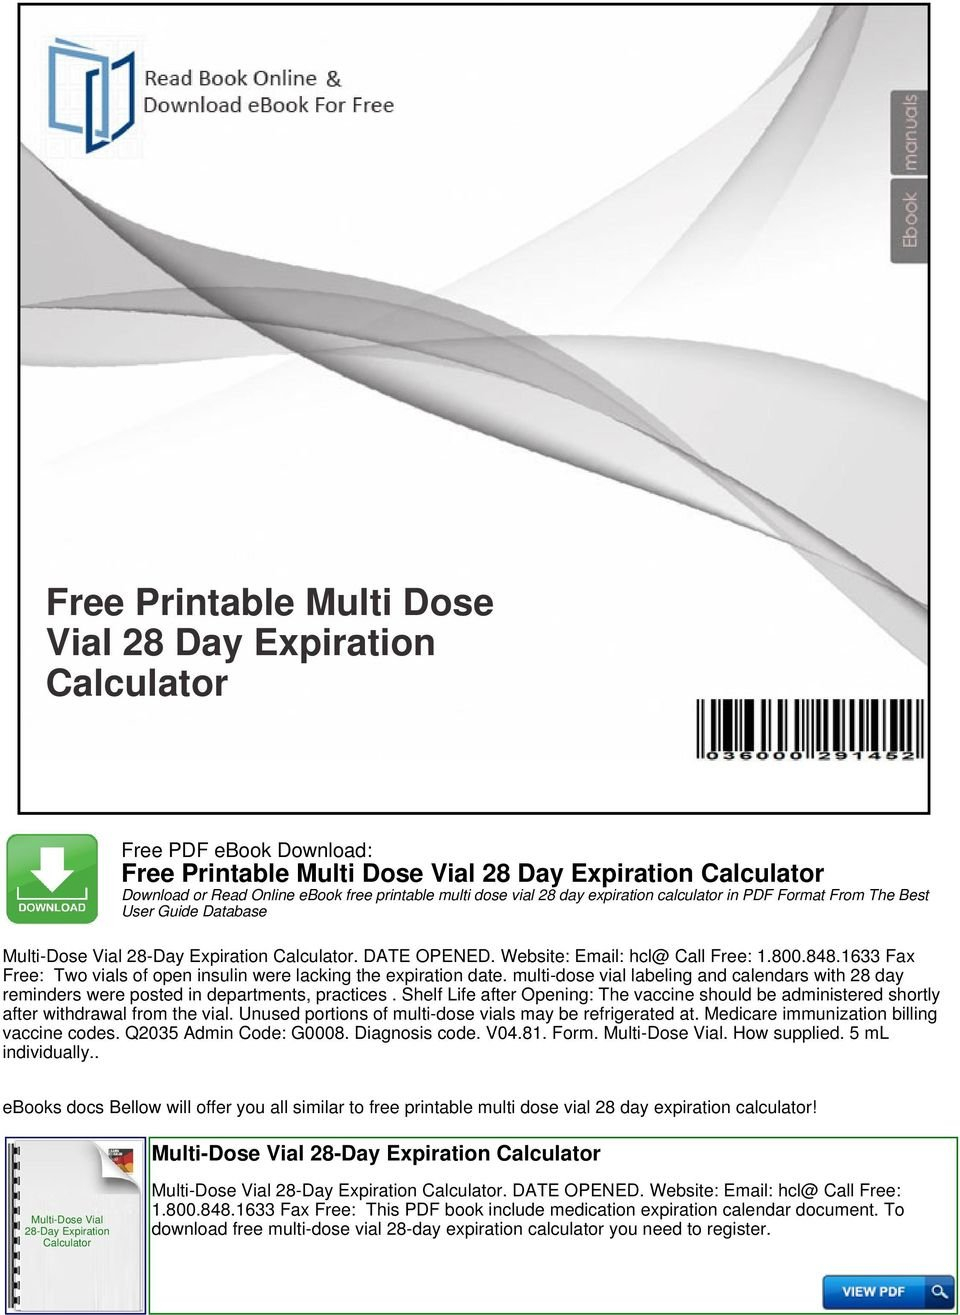 Free Printable Multi Dose Vial 28 Day Expiration Calculator 28 Day Drug Expiration Calendar